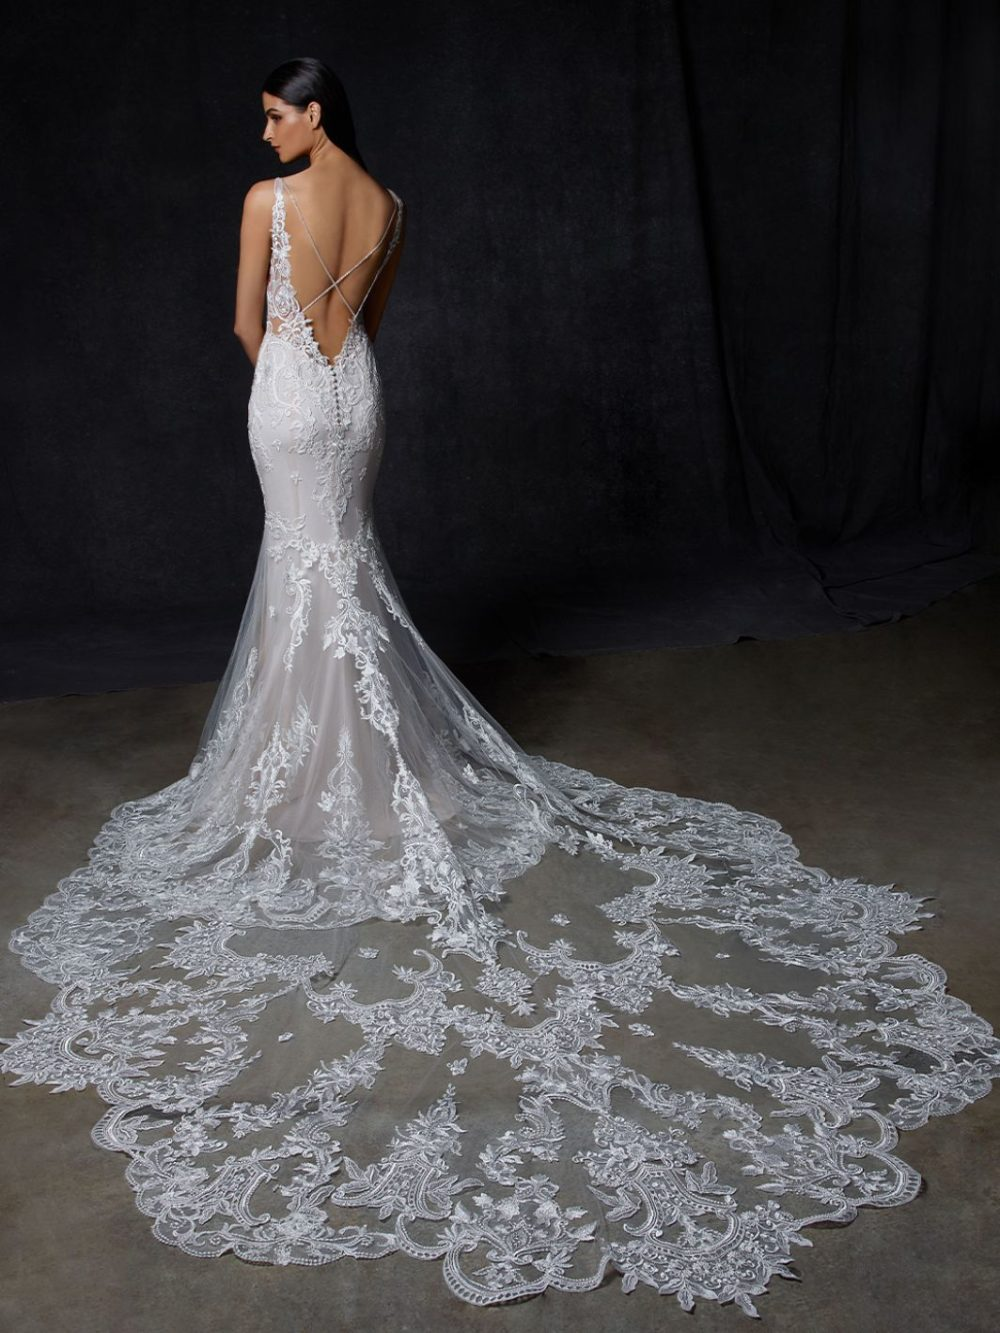 Olyvia by Enzoani Wedding gown dress back